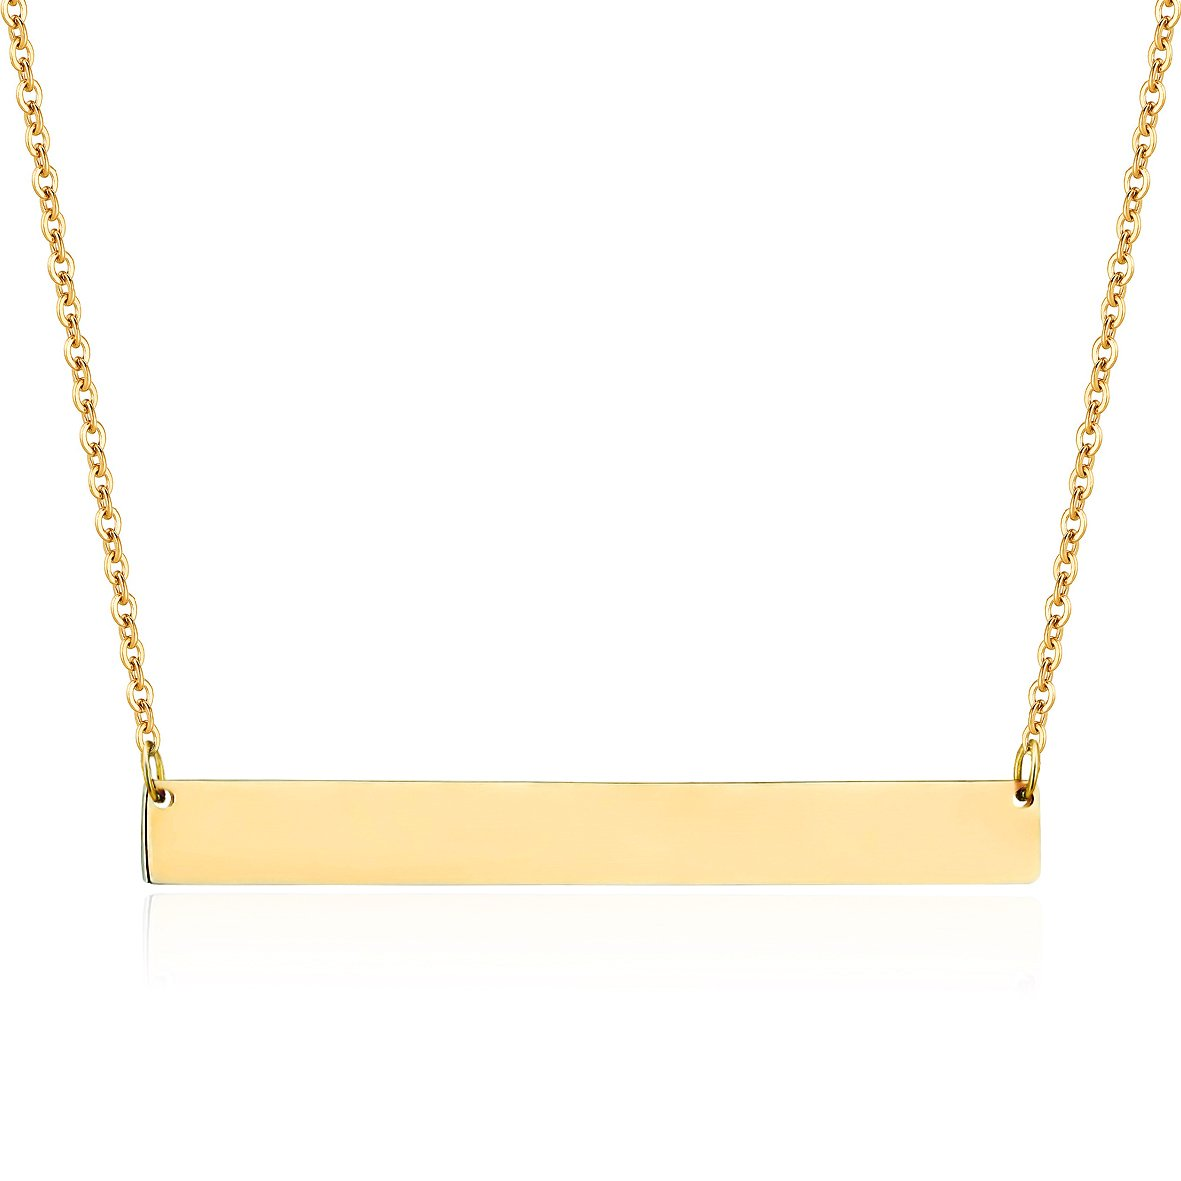 Lazycat Stainless Steel 18K Plated Bar Necklace with Engravable Bar Pendant (Gold)